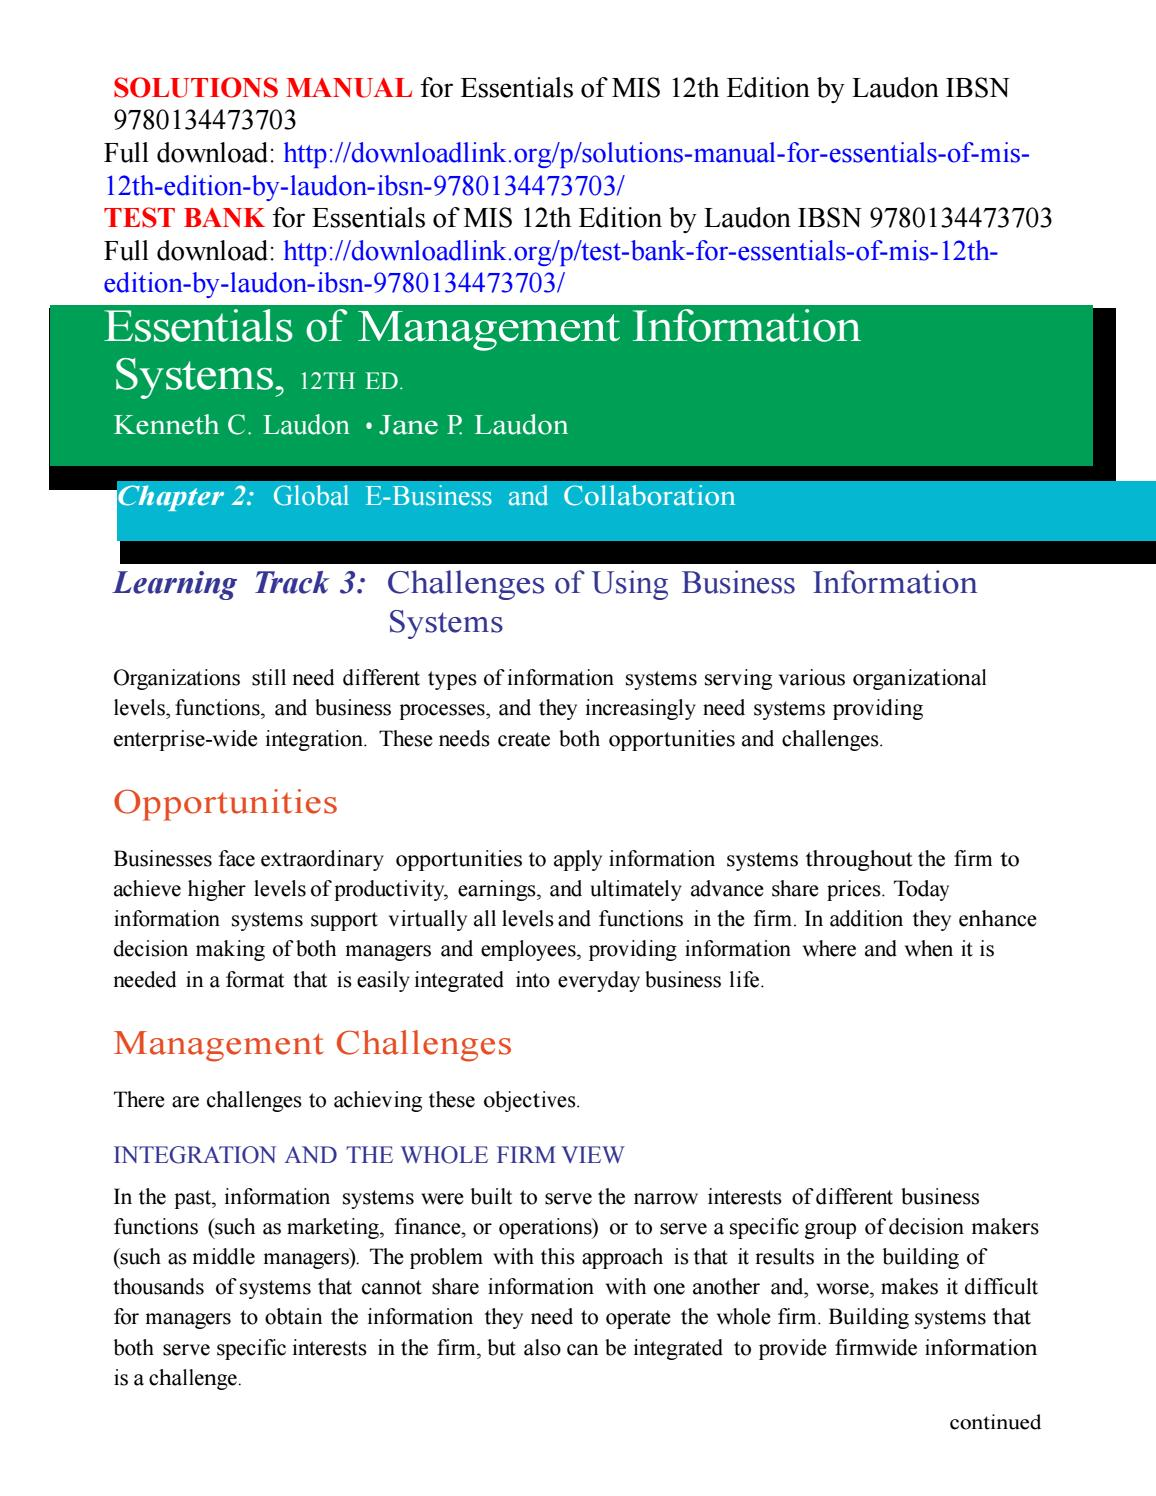 Solutions Manual For Essentials Of Mis 12th Edition By Laudon Ibsn 9780134473703 By Gucaki Issuu